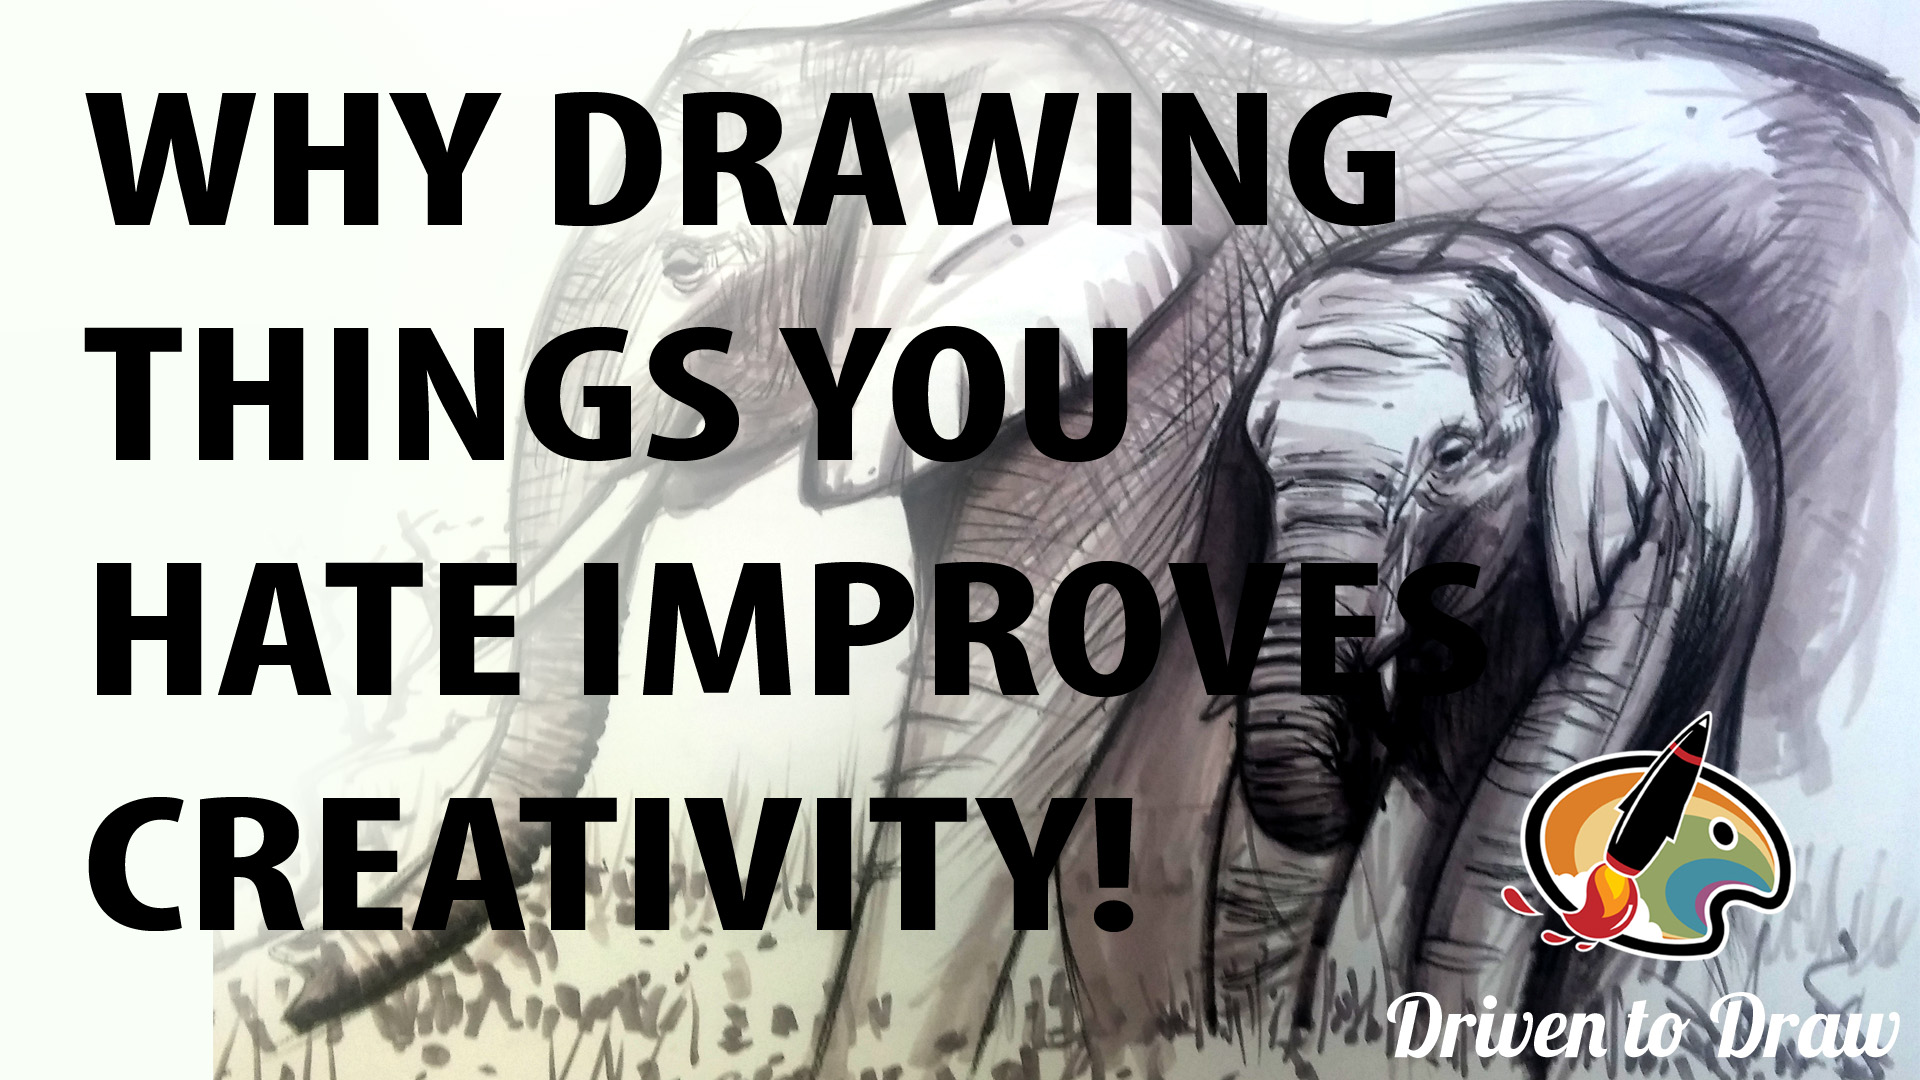 WHY DRAWING THINGS YOU HATE, WILL HELP YOUR CREATIVITY